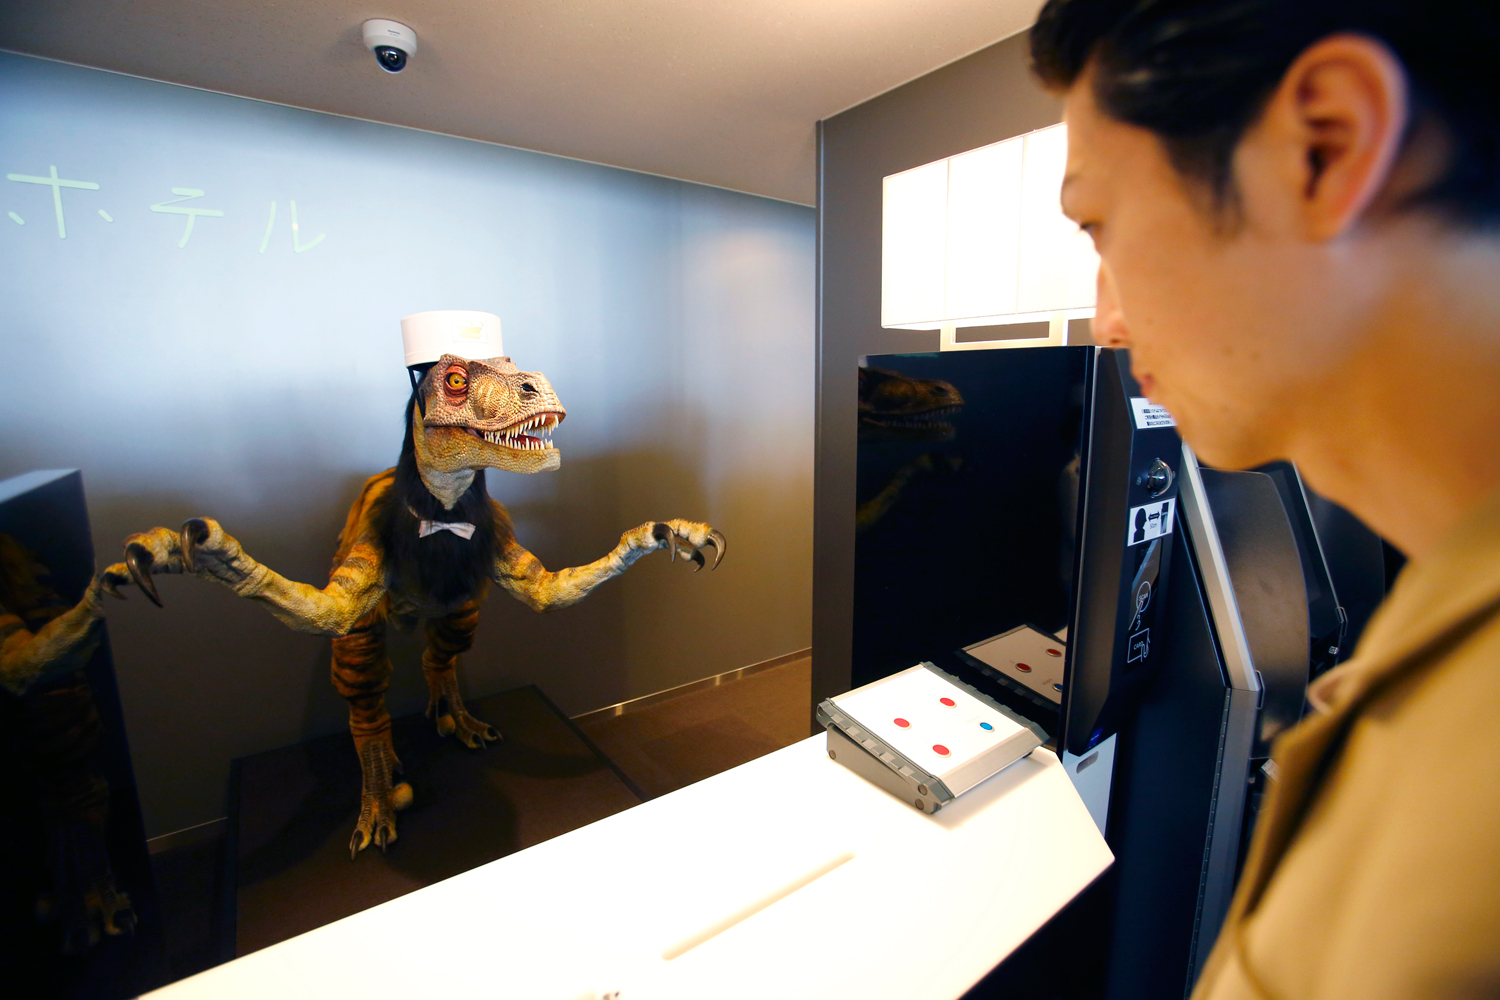 A receptionist dinosaur robot greets a hotel employee demonstrating how to check in for the media at the new hotel, aptly called Henn na Hotel or Weird Hotel, in Sasebo, southwestern Japan, July 15, 2015.